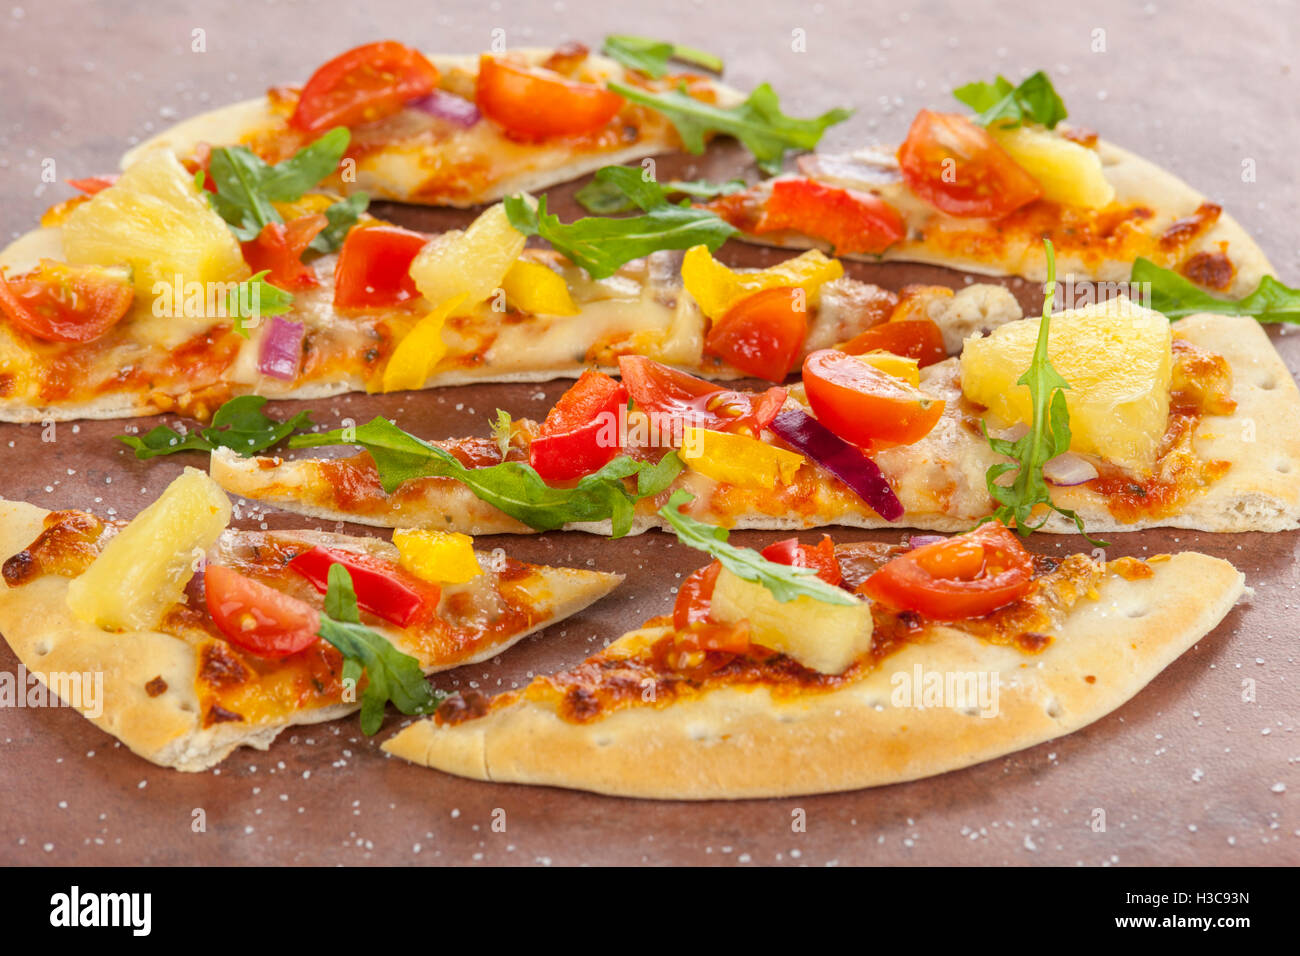 Stone baked thin crust pizza with pineapple, pepper and red onions sprinkled with sea salt and rocket leaves - Stock Image